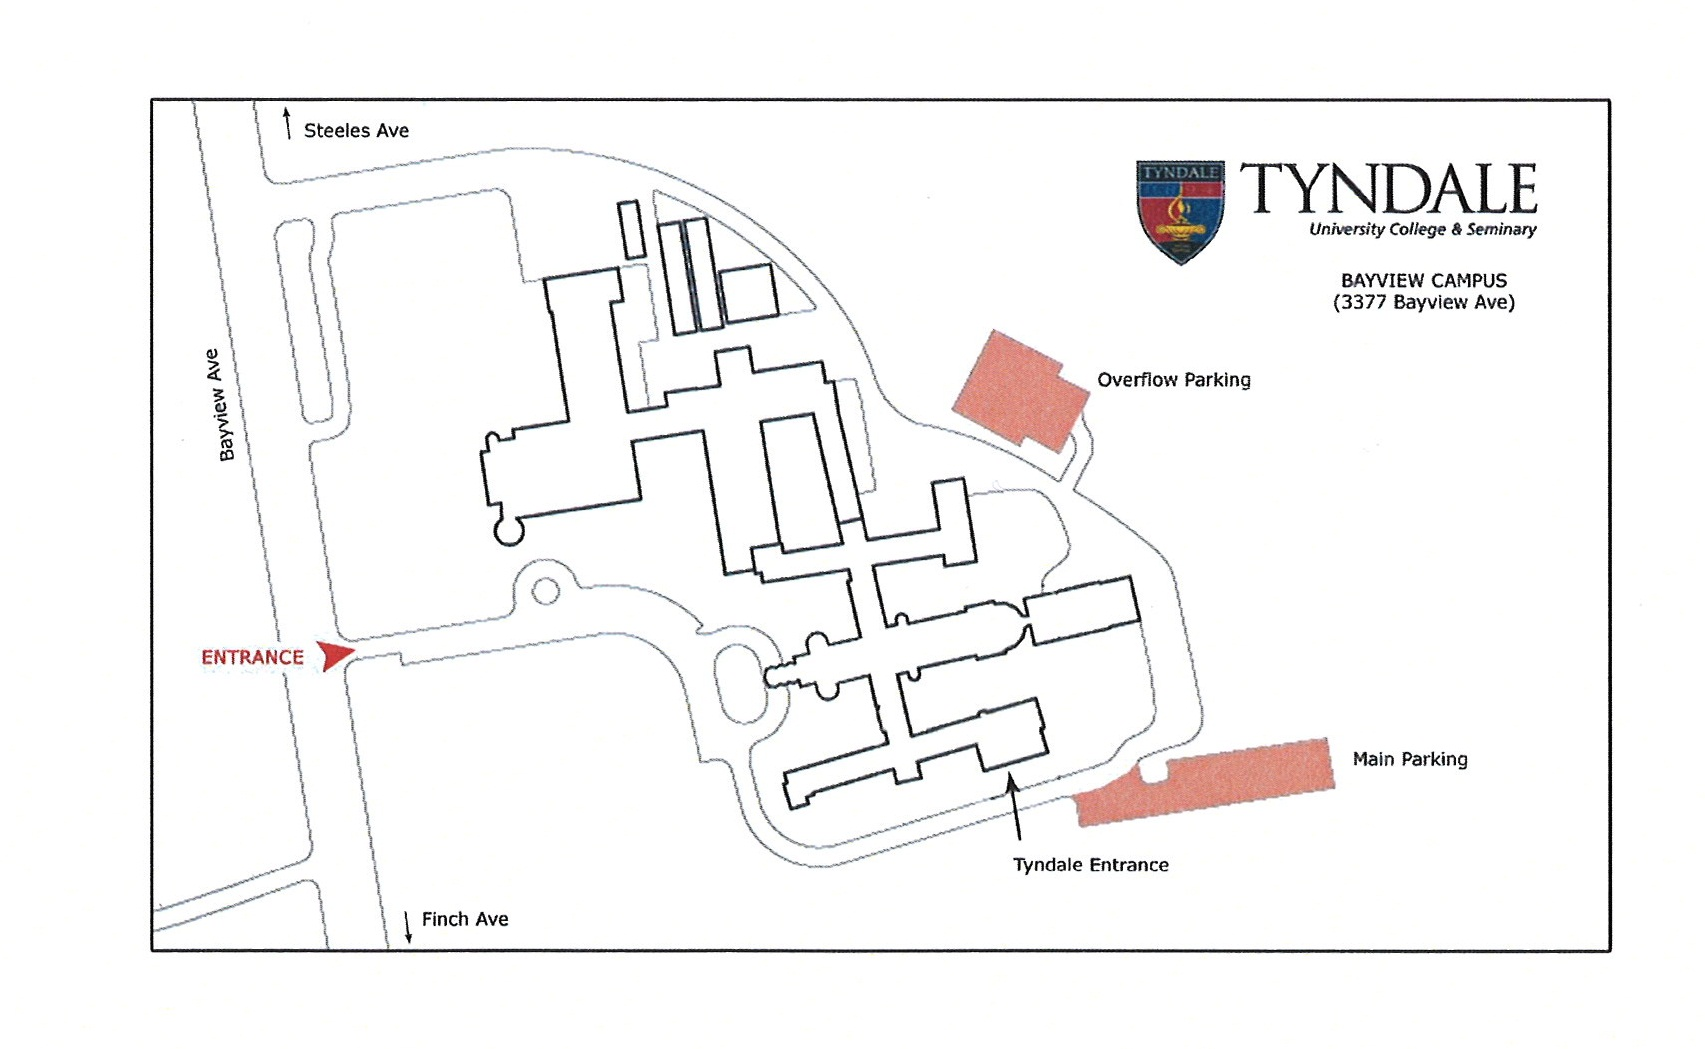 College University: Tyndale University College Bayview Campus